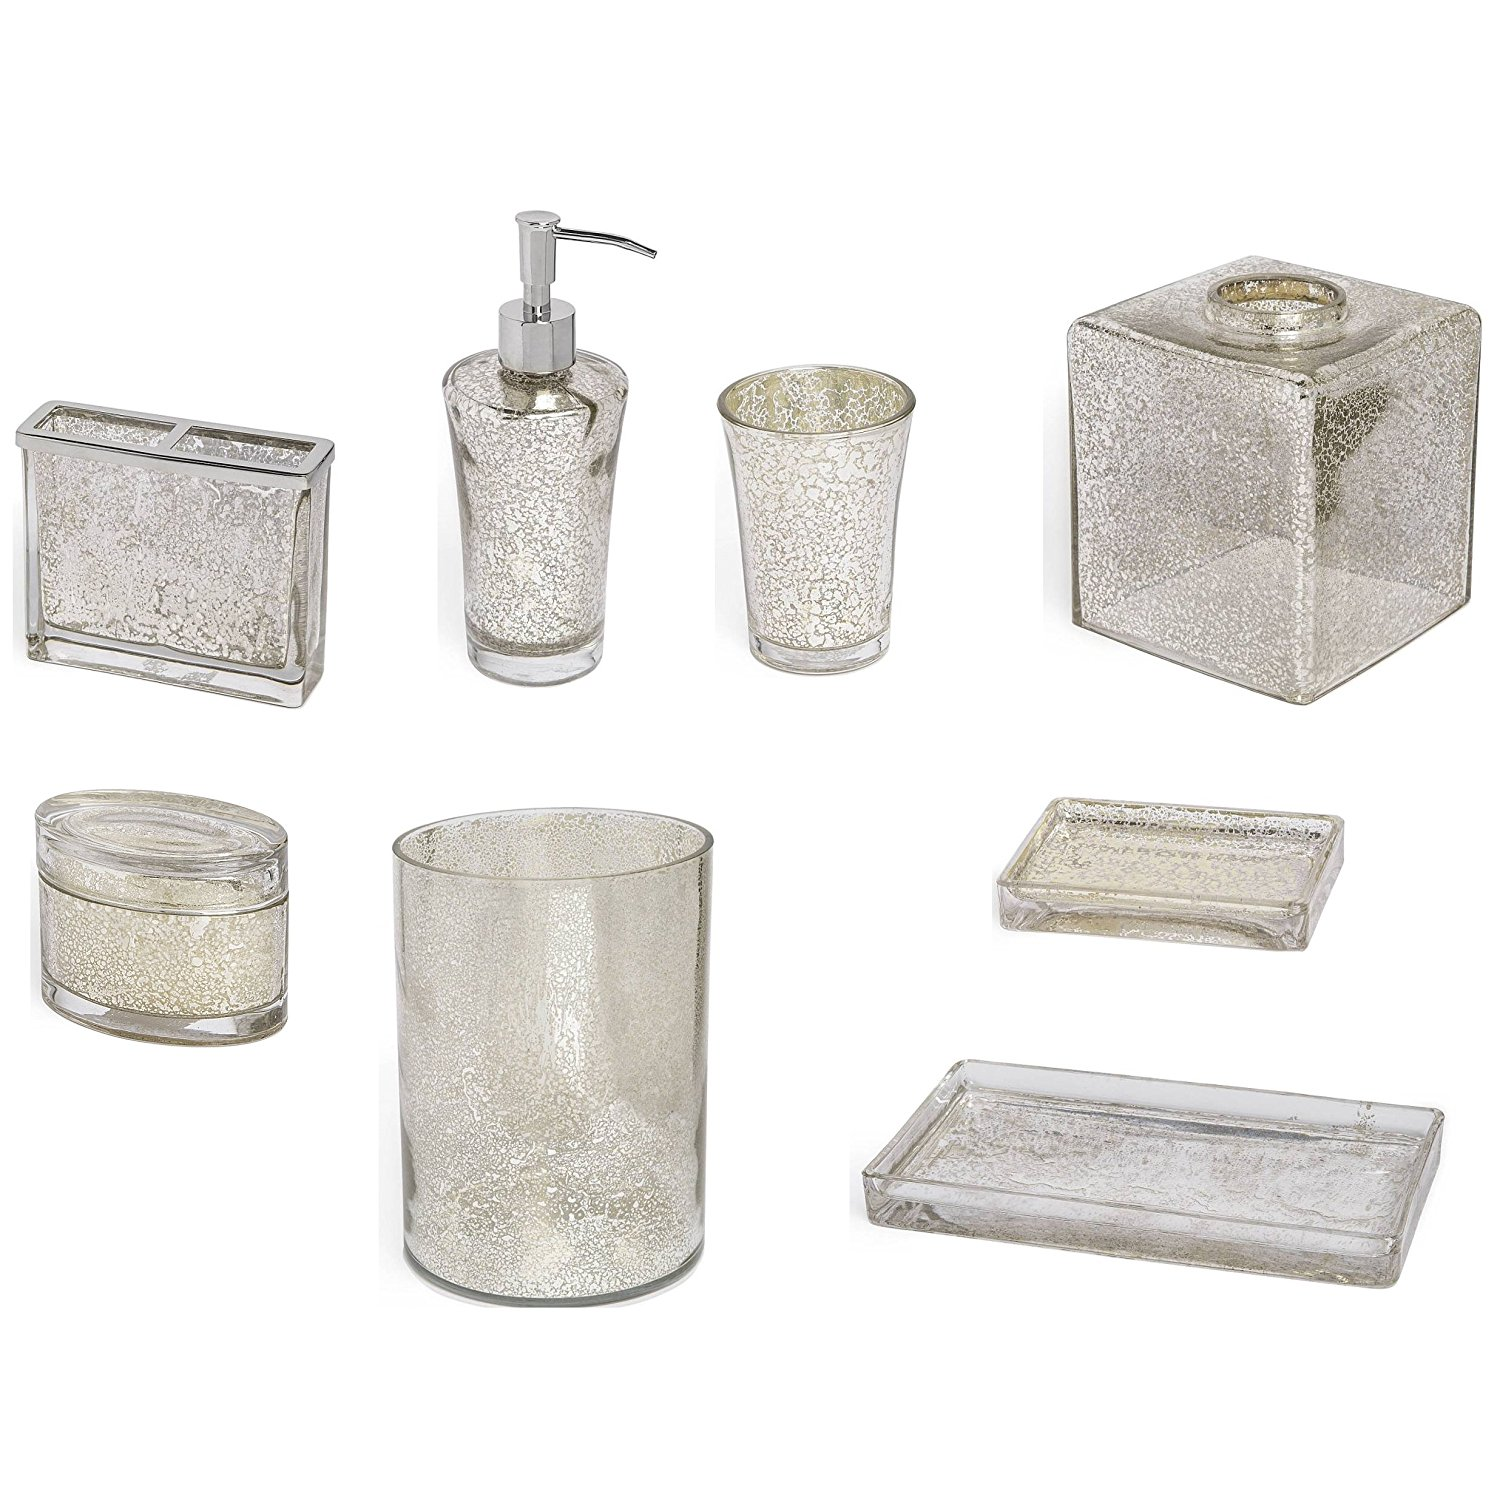 8-Piece Bath Accessory Complete Set by Kassatex, Vizcaya Bath Accessories